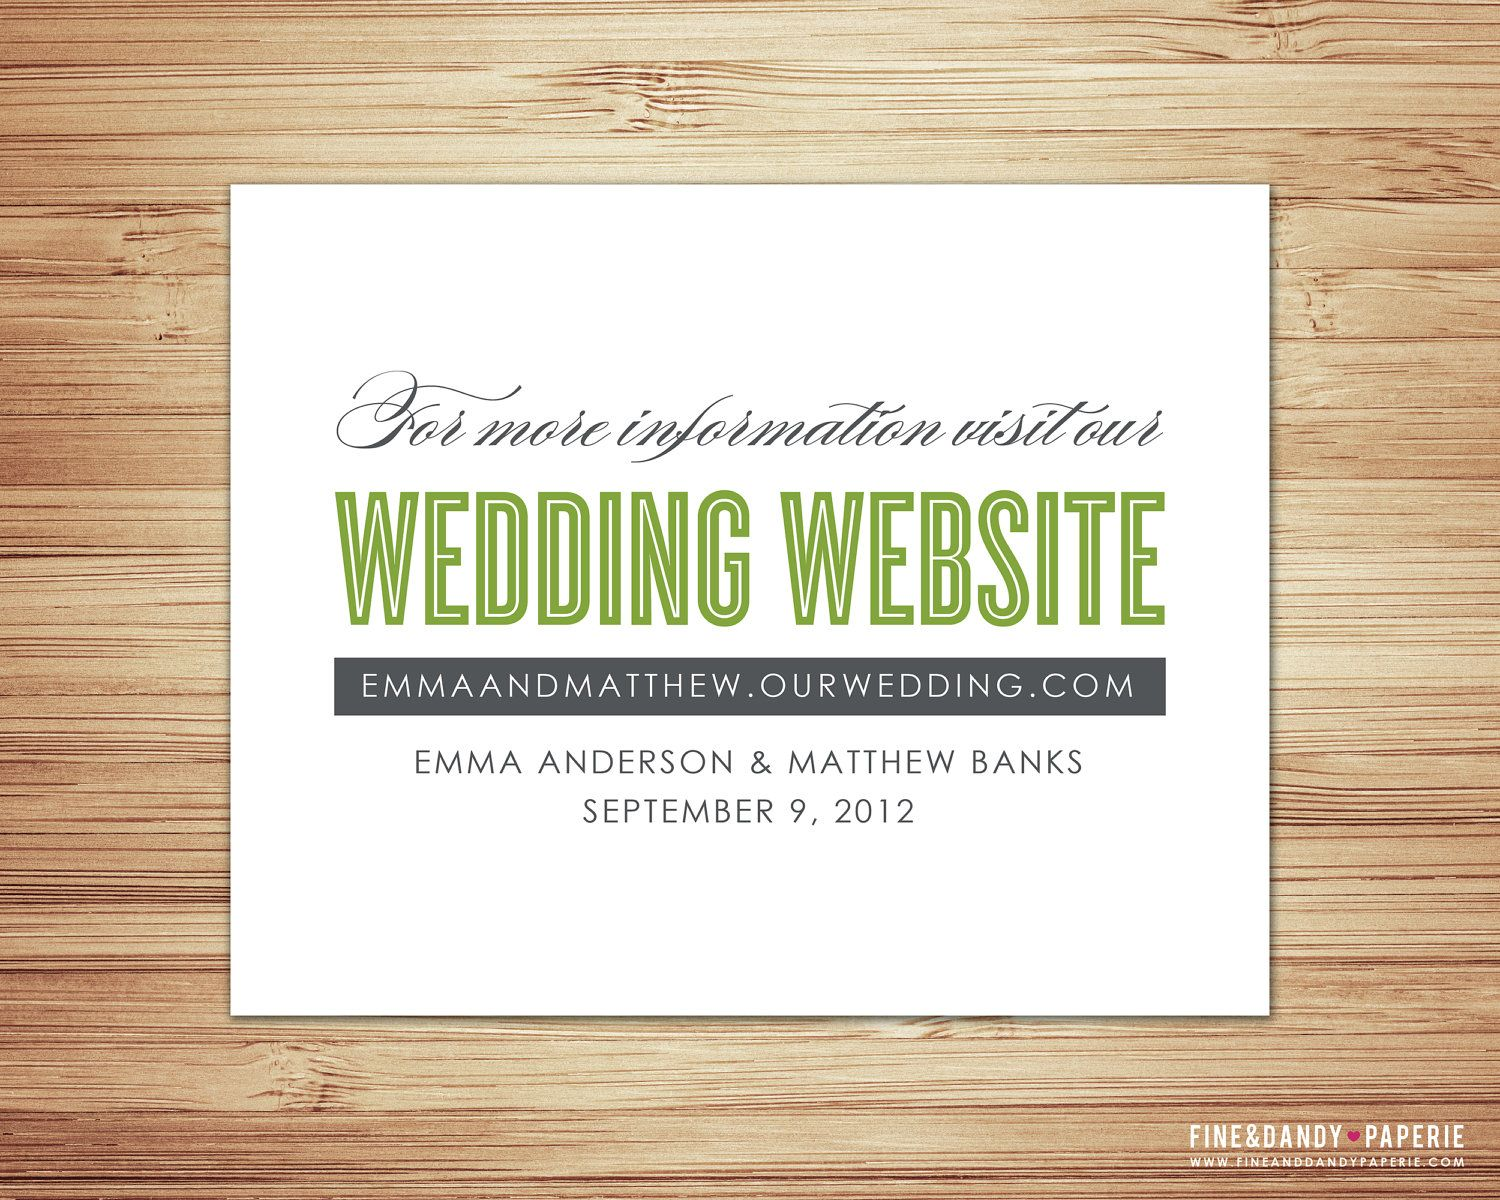 Wedding website insert for invitation instead of layers of